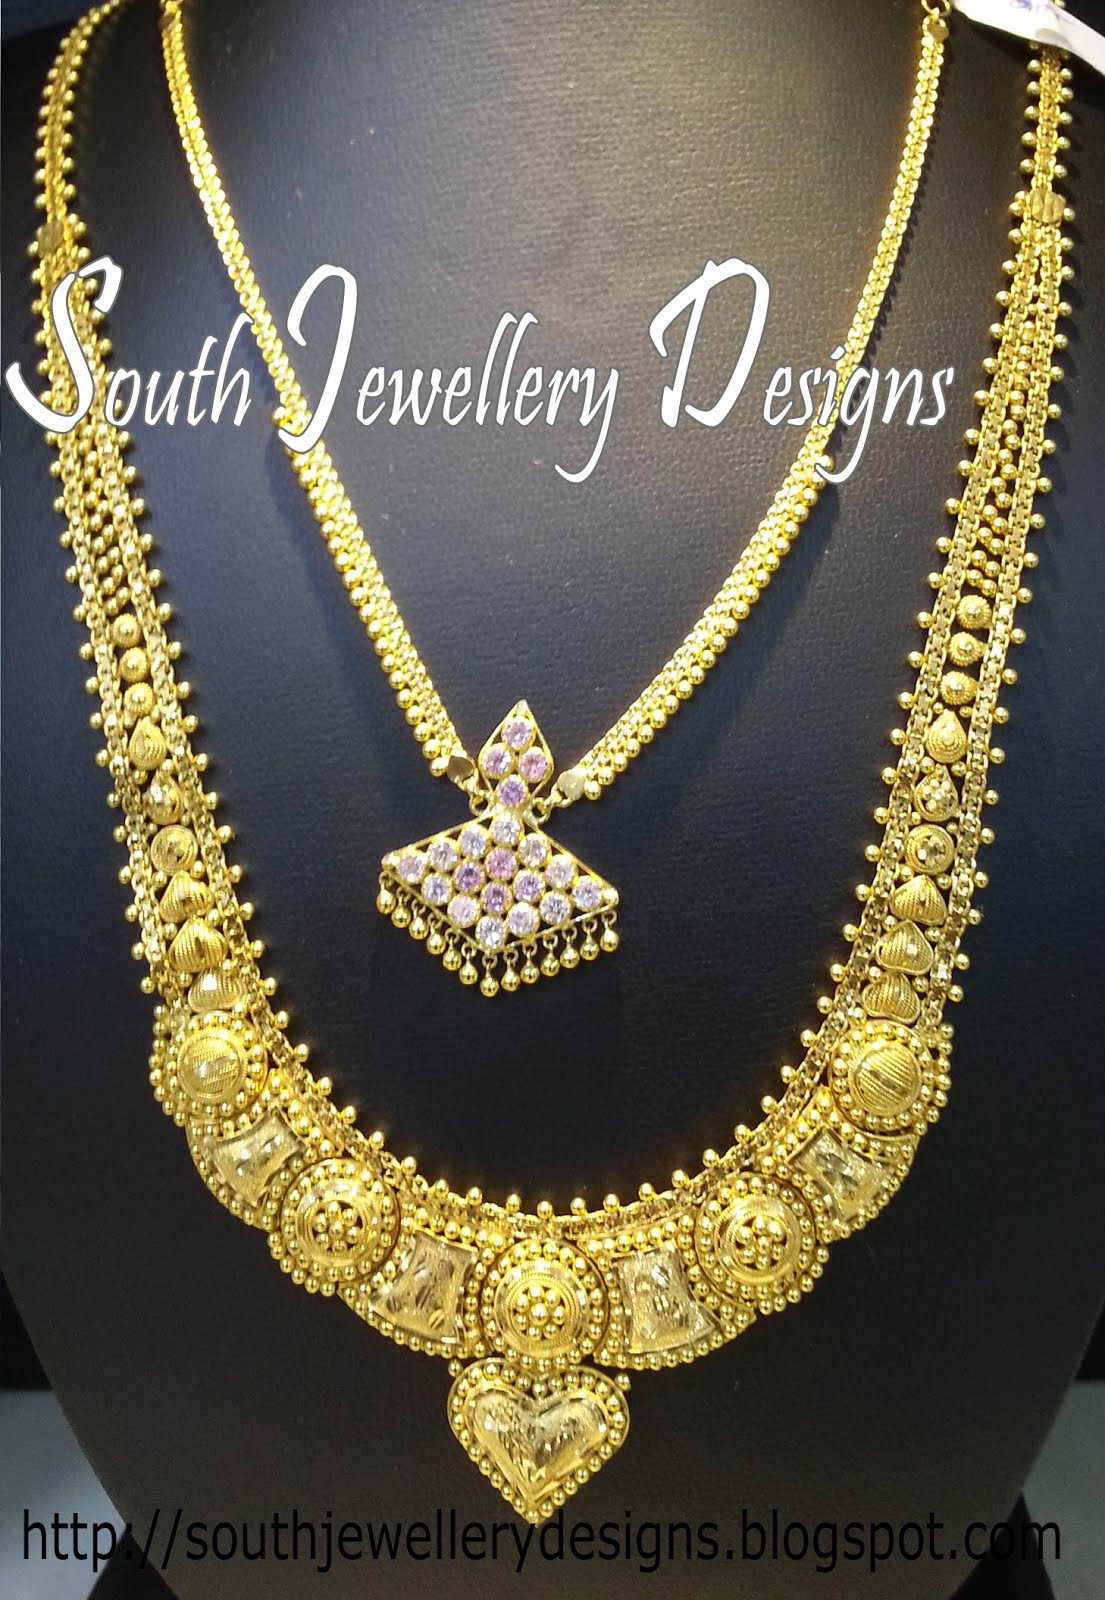 South Jewellery Designs: South Indian Kerala Long Chain Models